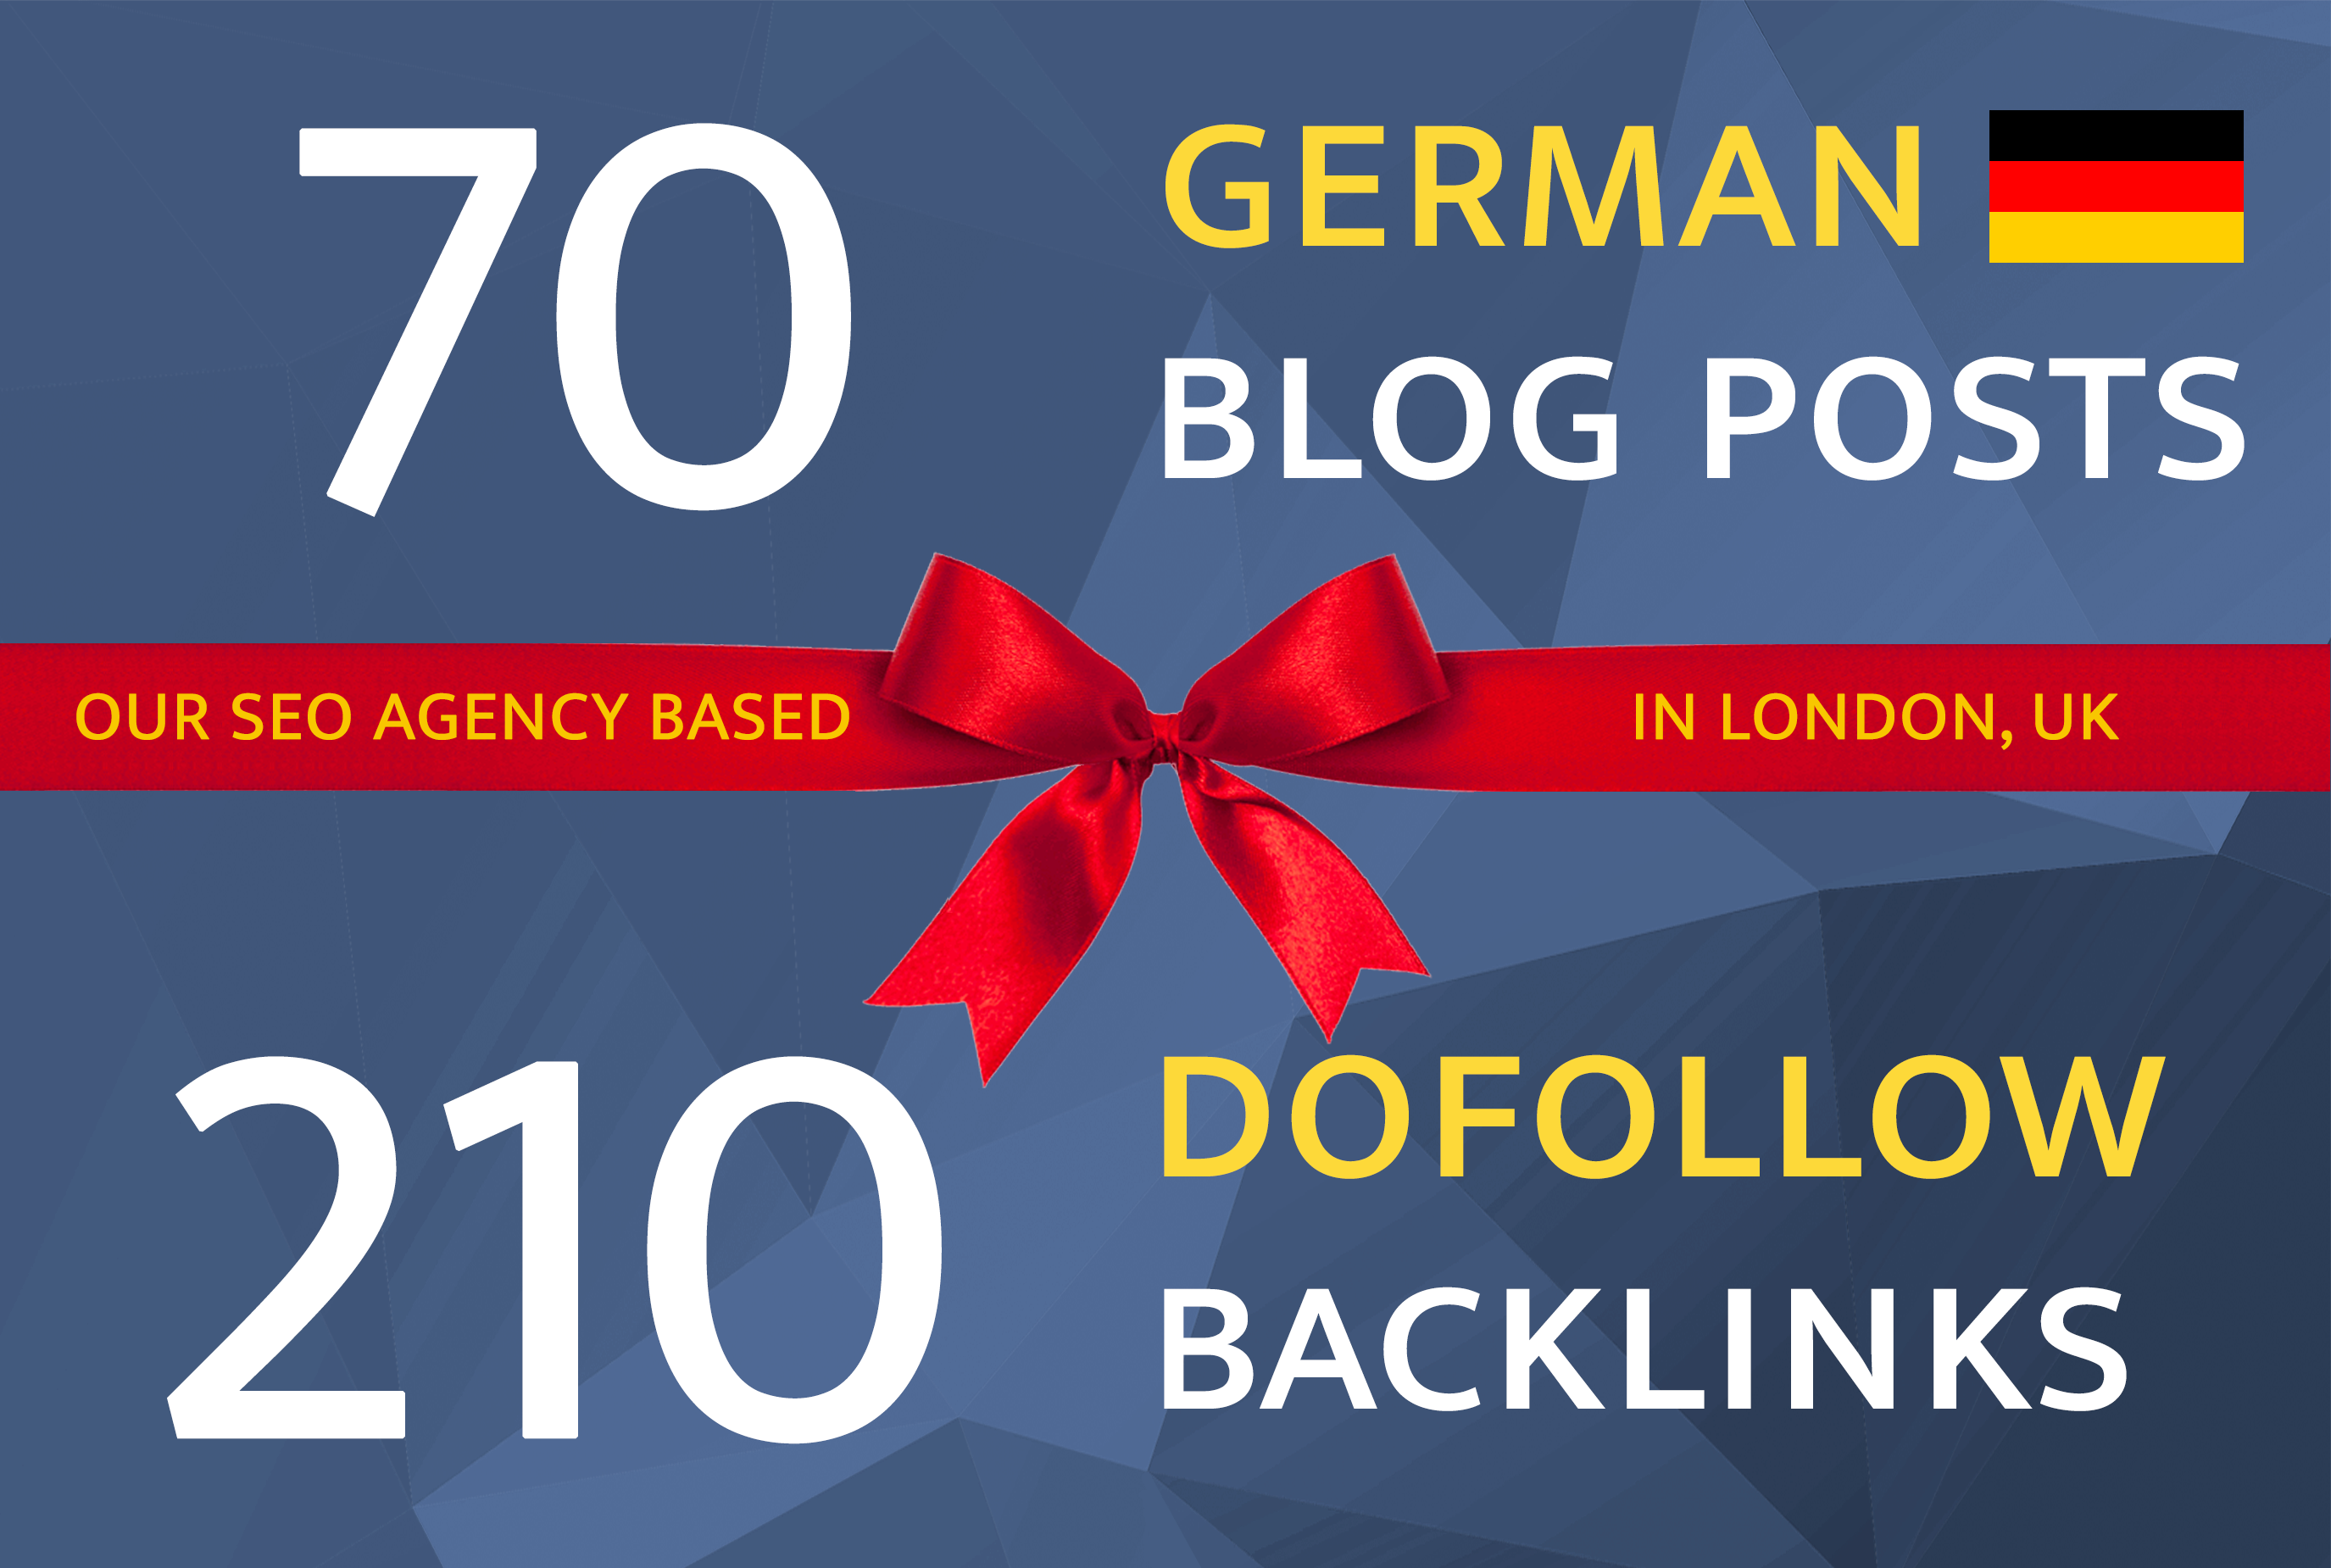 Manual submissions 70 blog posts and 210 deutsche german backlinks seo link building pbn